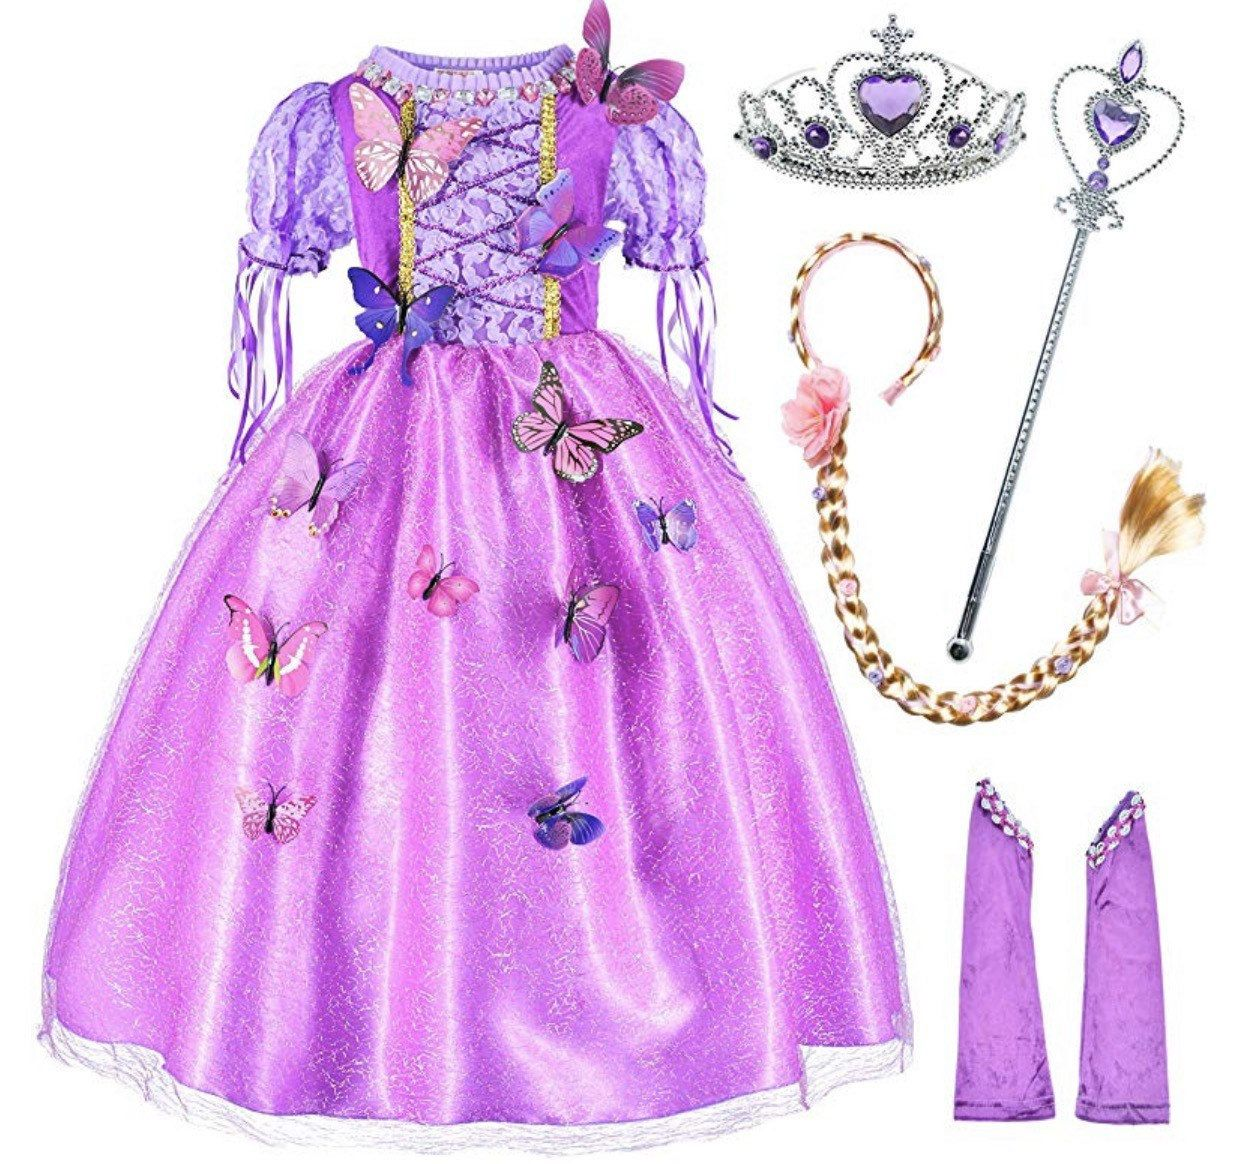 Birthday Party Disney Rapunzel Deluxe Dress Costume Set for Kids Accessories